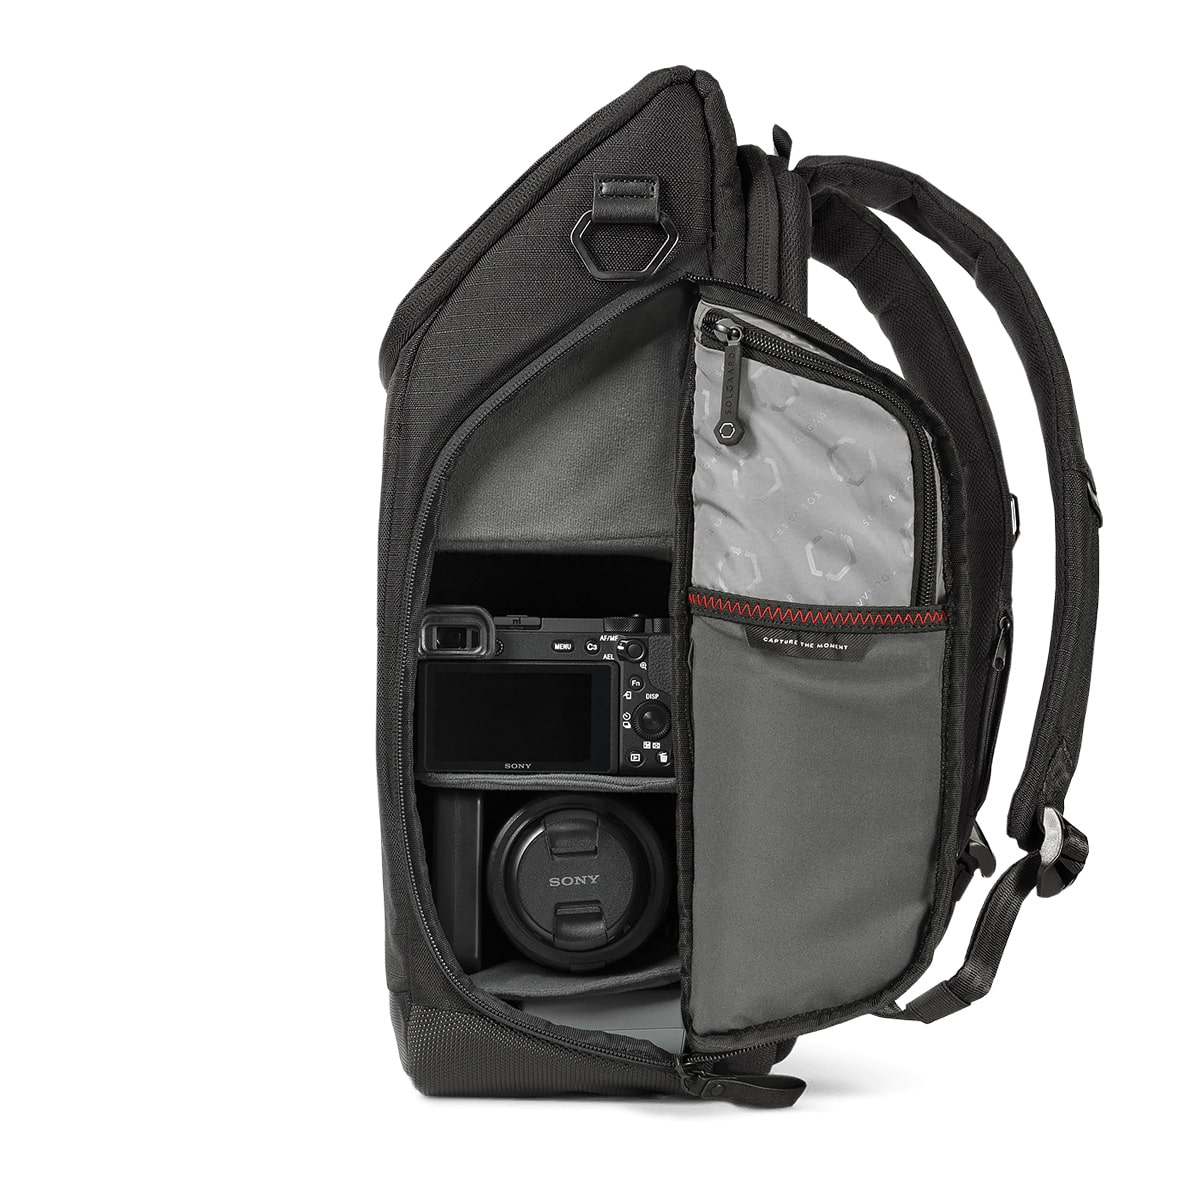 Light and compact camera backpack